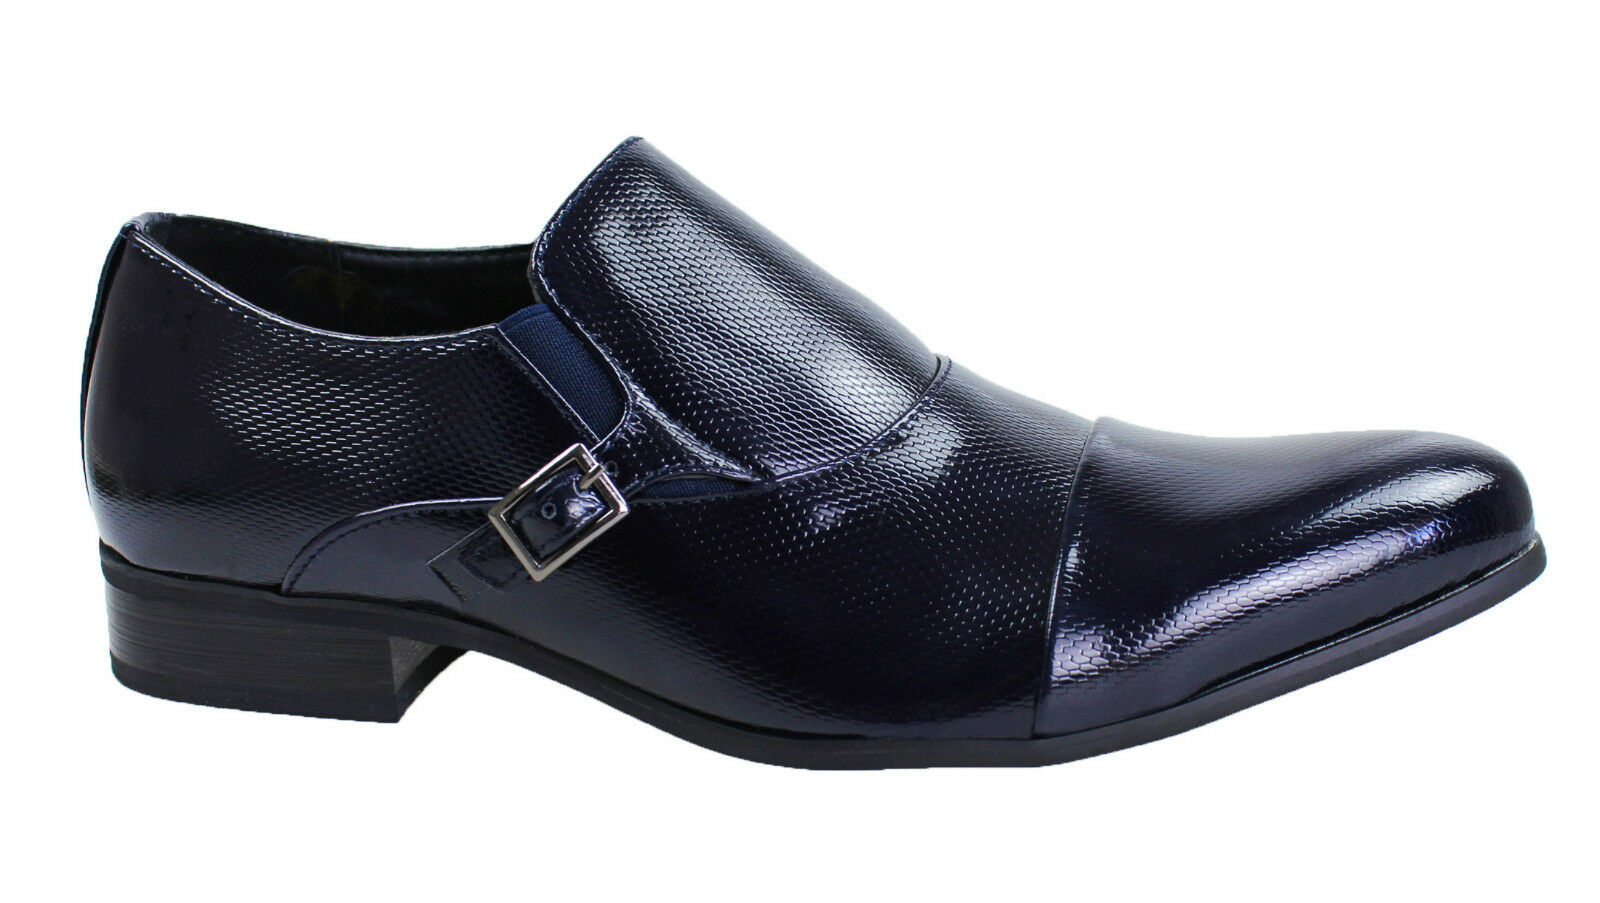 shoes men DIAMANT CLASS blue VERNIS ÉLÉGANT CÉRÉMONIE 40 41 42 43 44 45